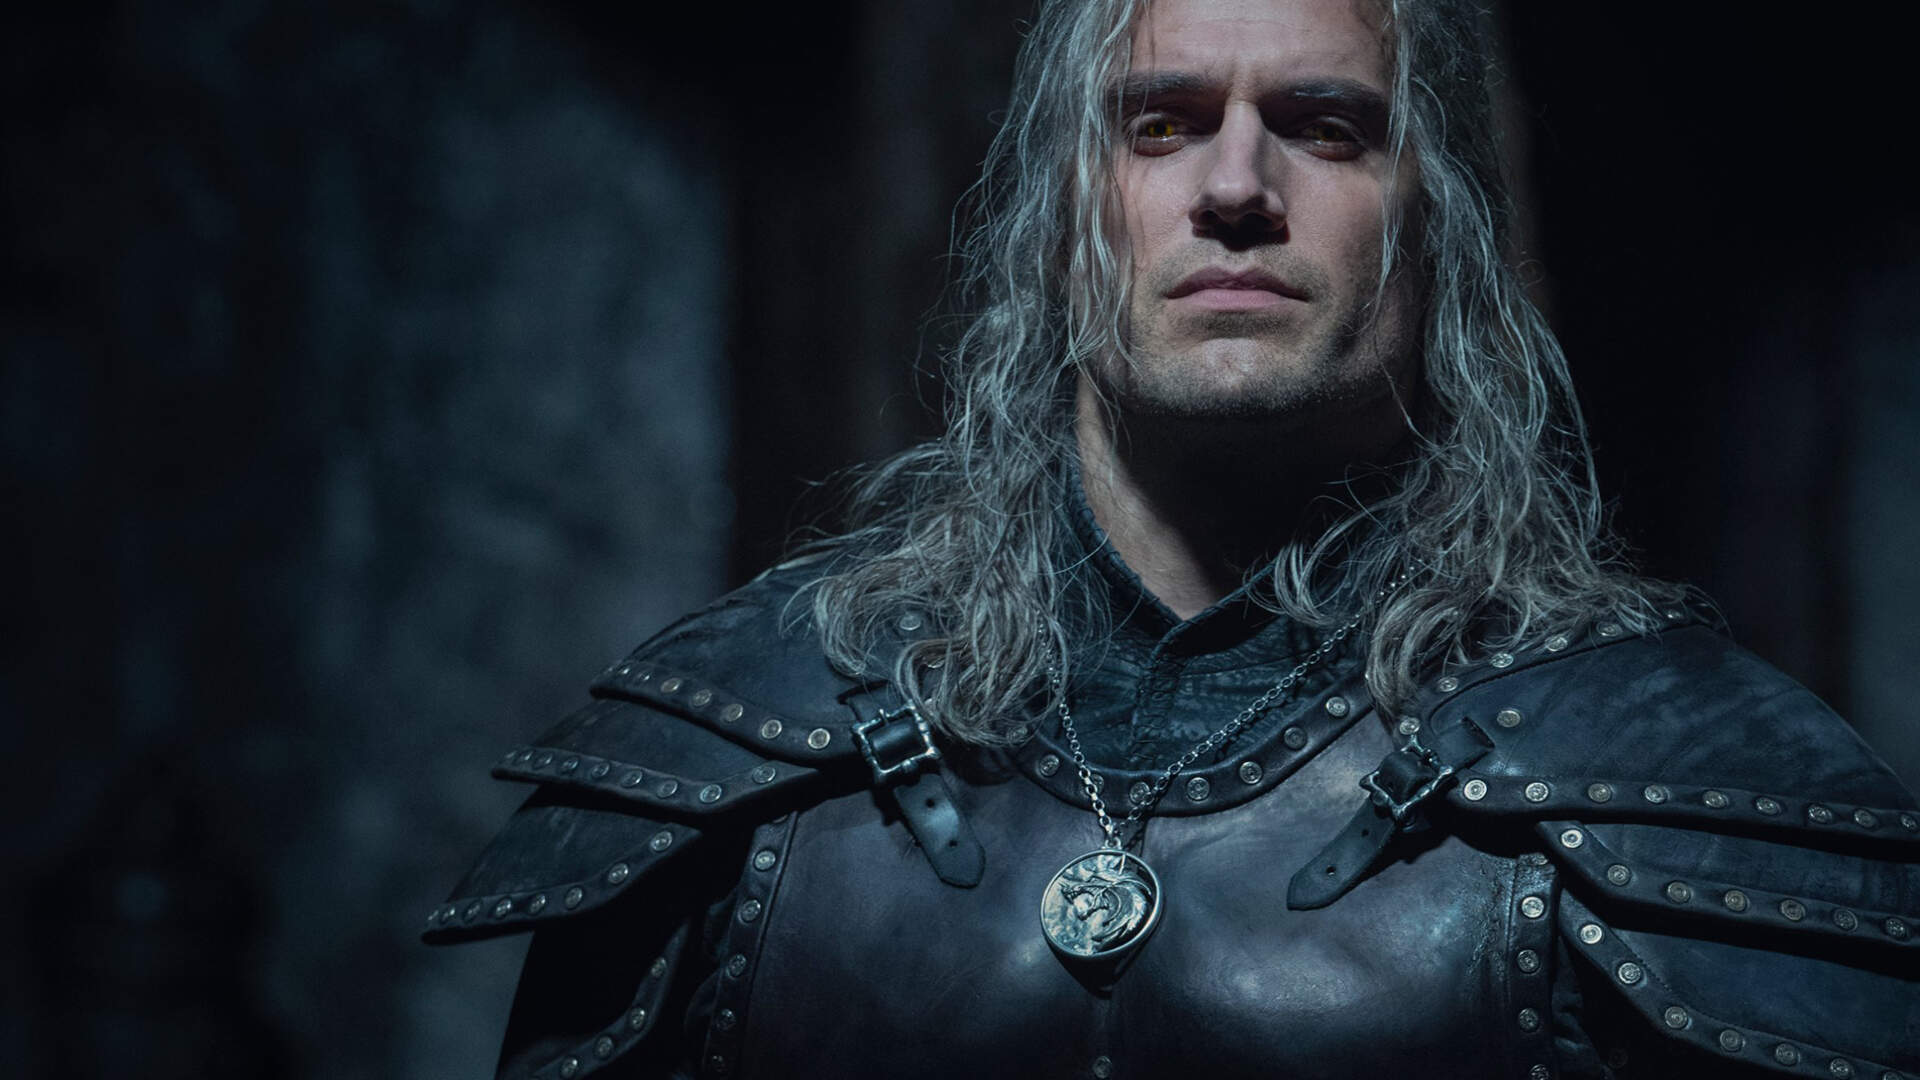 The Witcher Season 2 Gives Geralt a New Look and More Shoulderpads